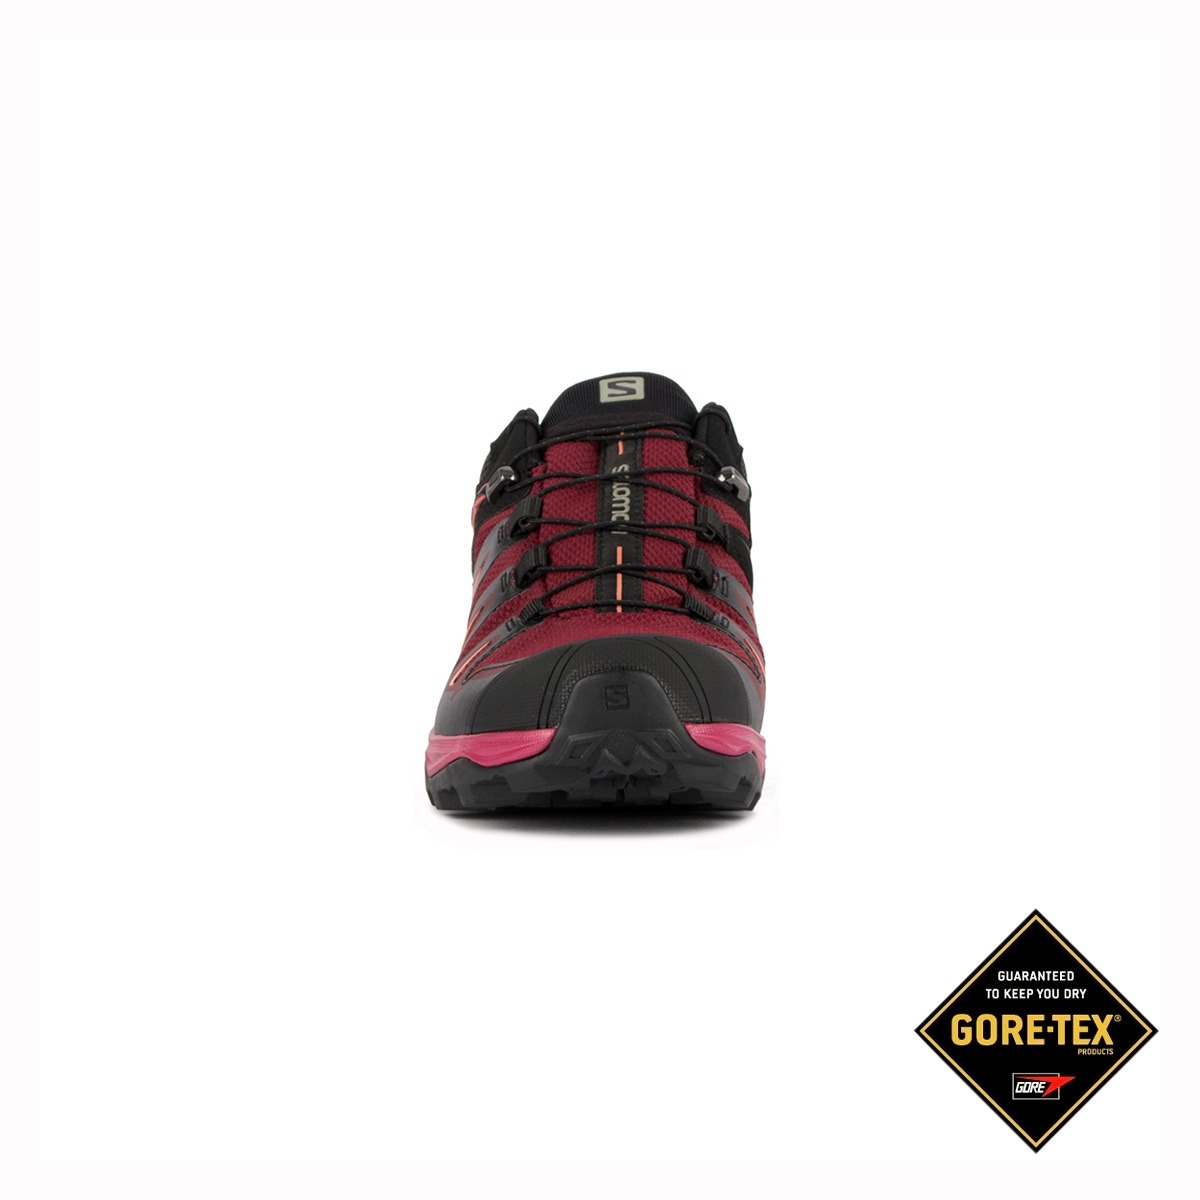 Salomon Zapatilla trailrunning X Ultra 3 GTX Tawny Port Negro Granate Goretex Mujer